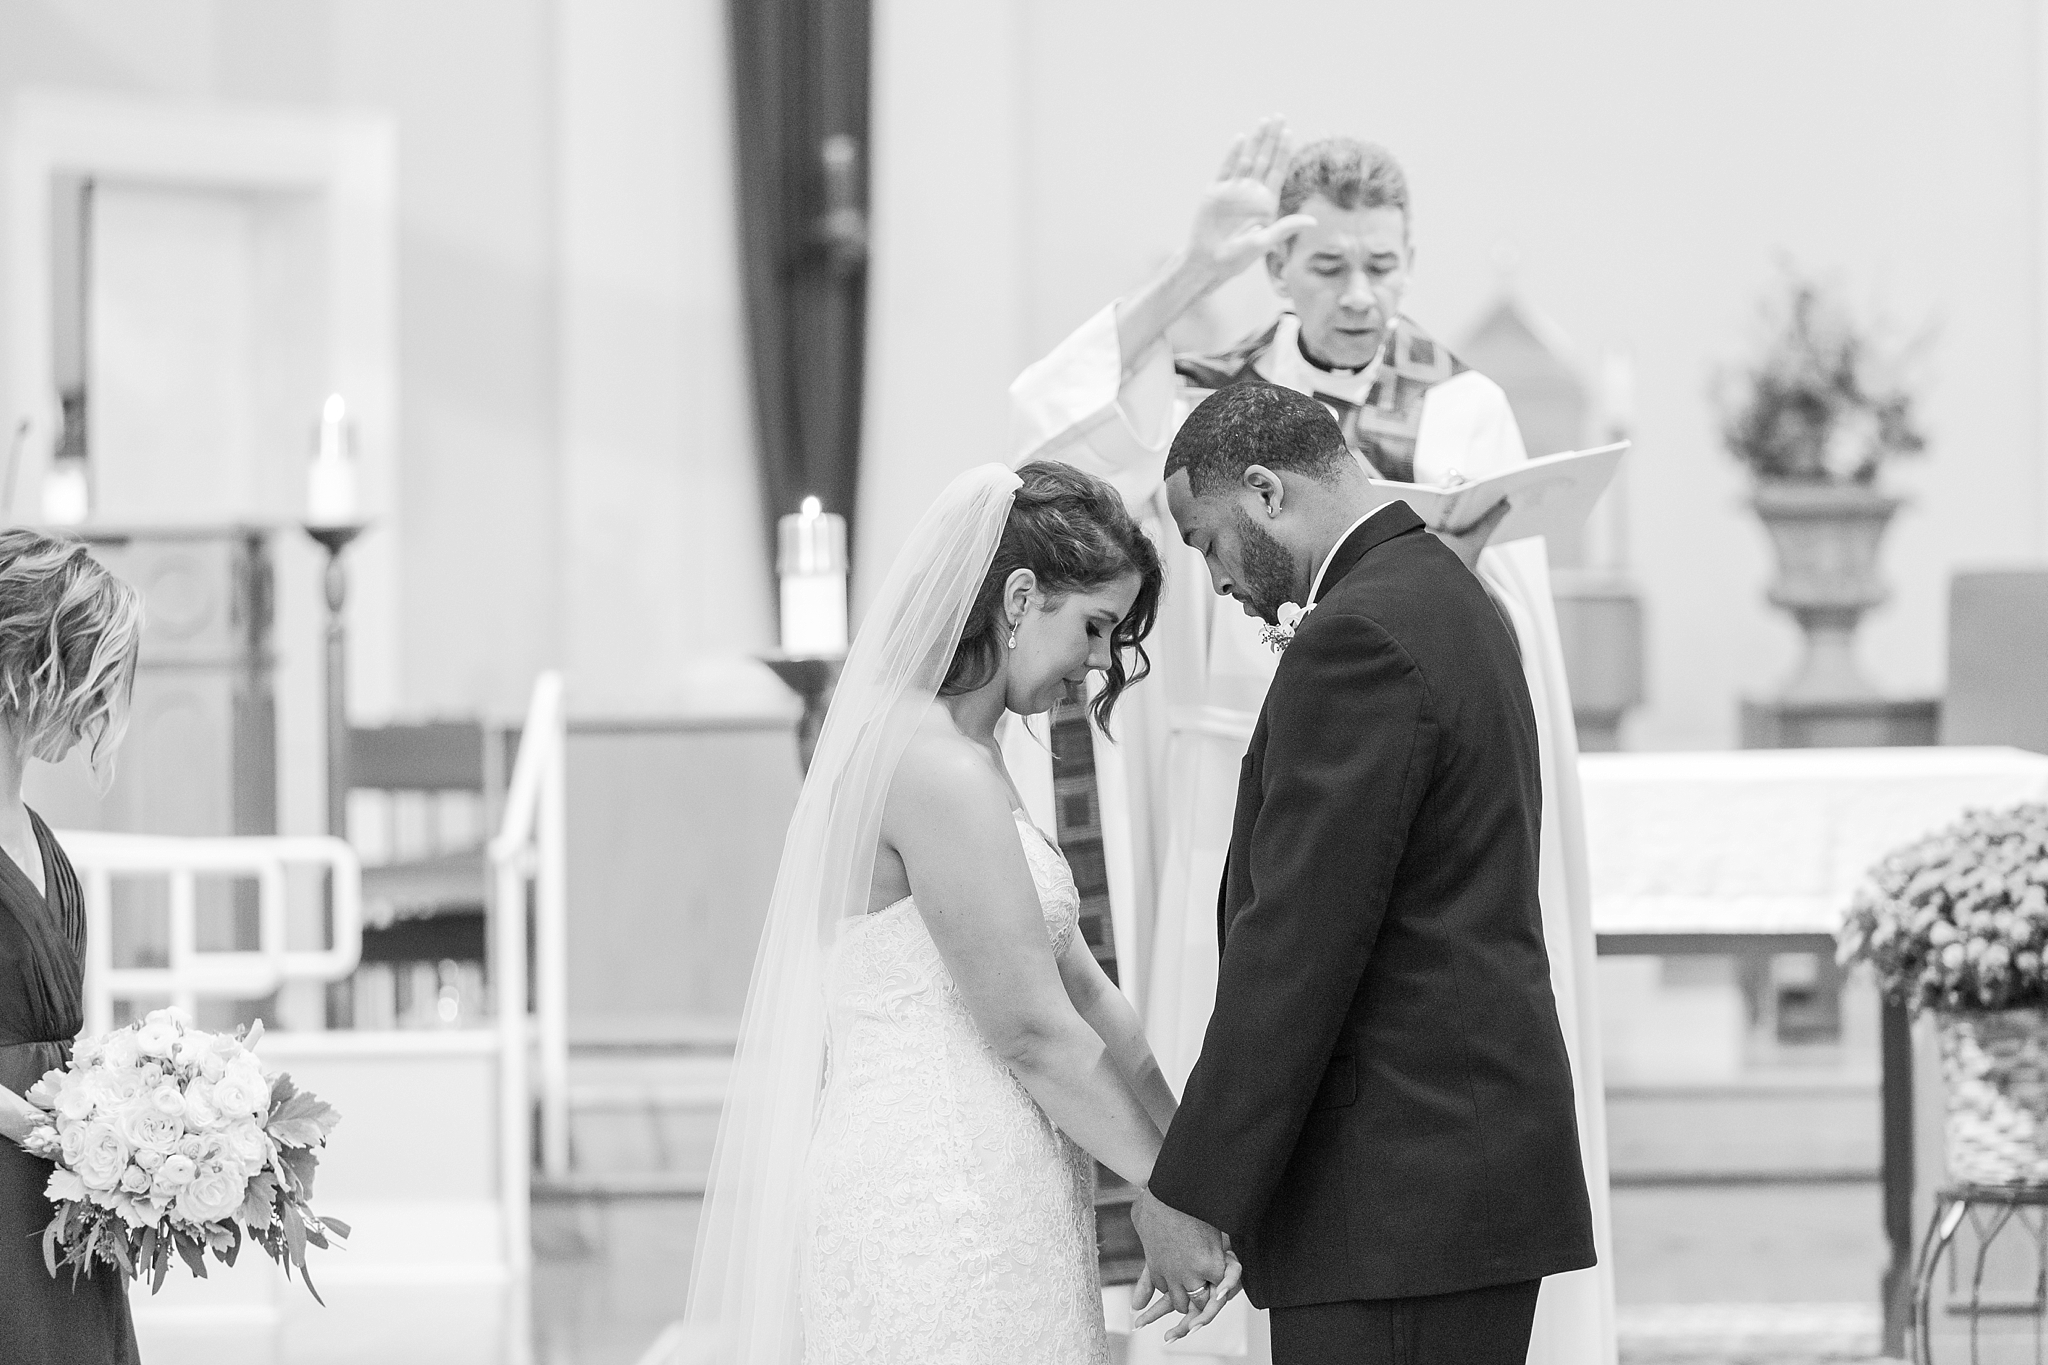 romantic-artful-candid-wedding-photos-in-detroit-lansing-ann-arbor-northern-michigan-and-chicago-by-courtney-carolyn-photography_0015.jpg